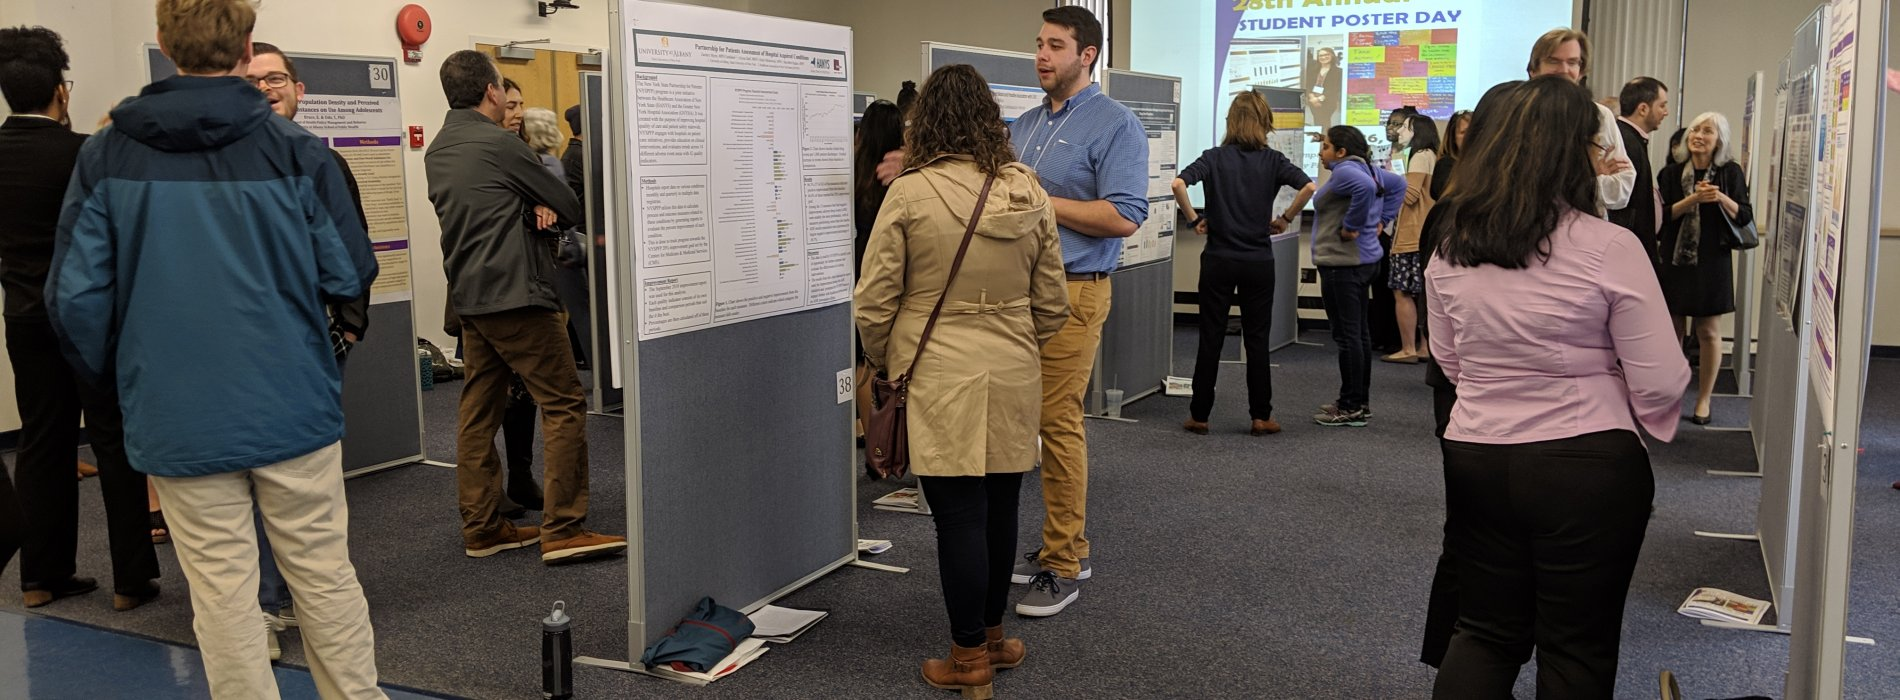 Student and faculty talking in front of academic posters